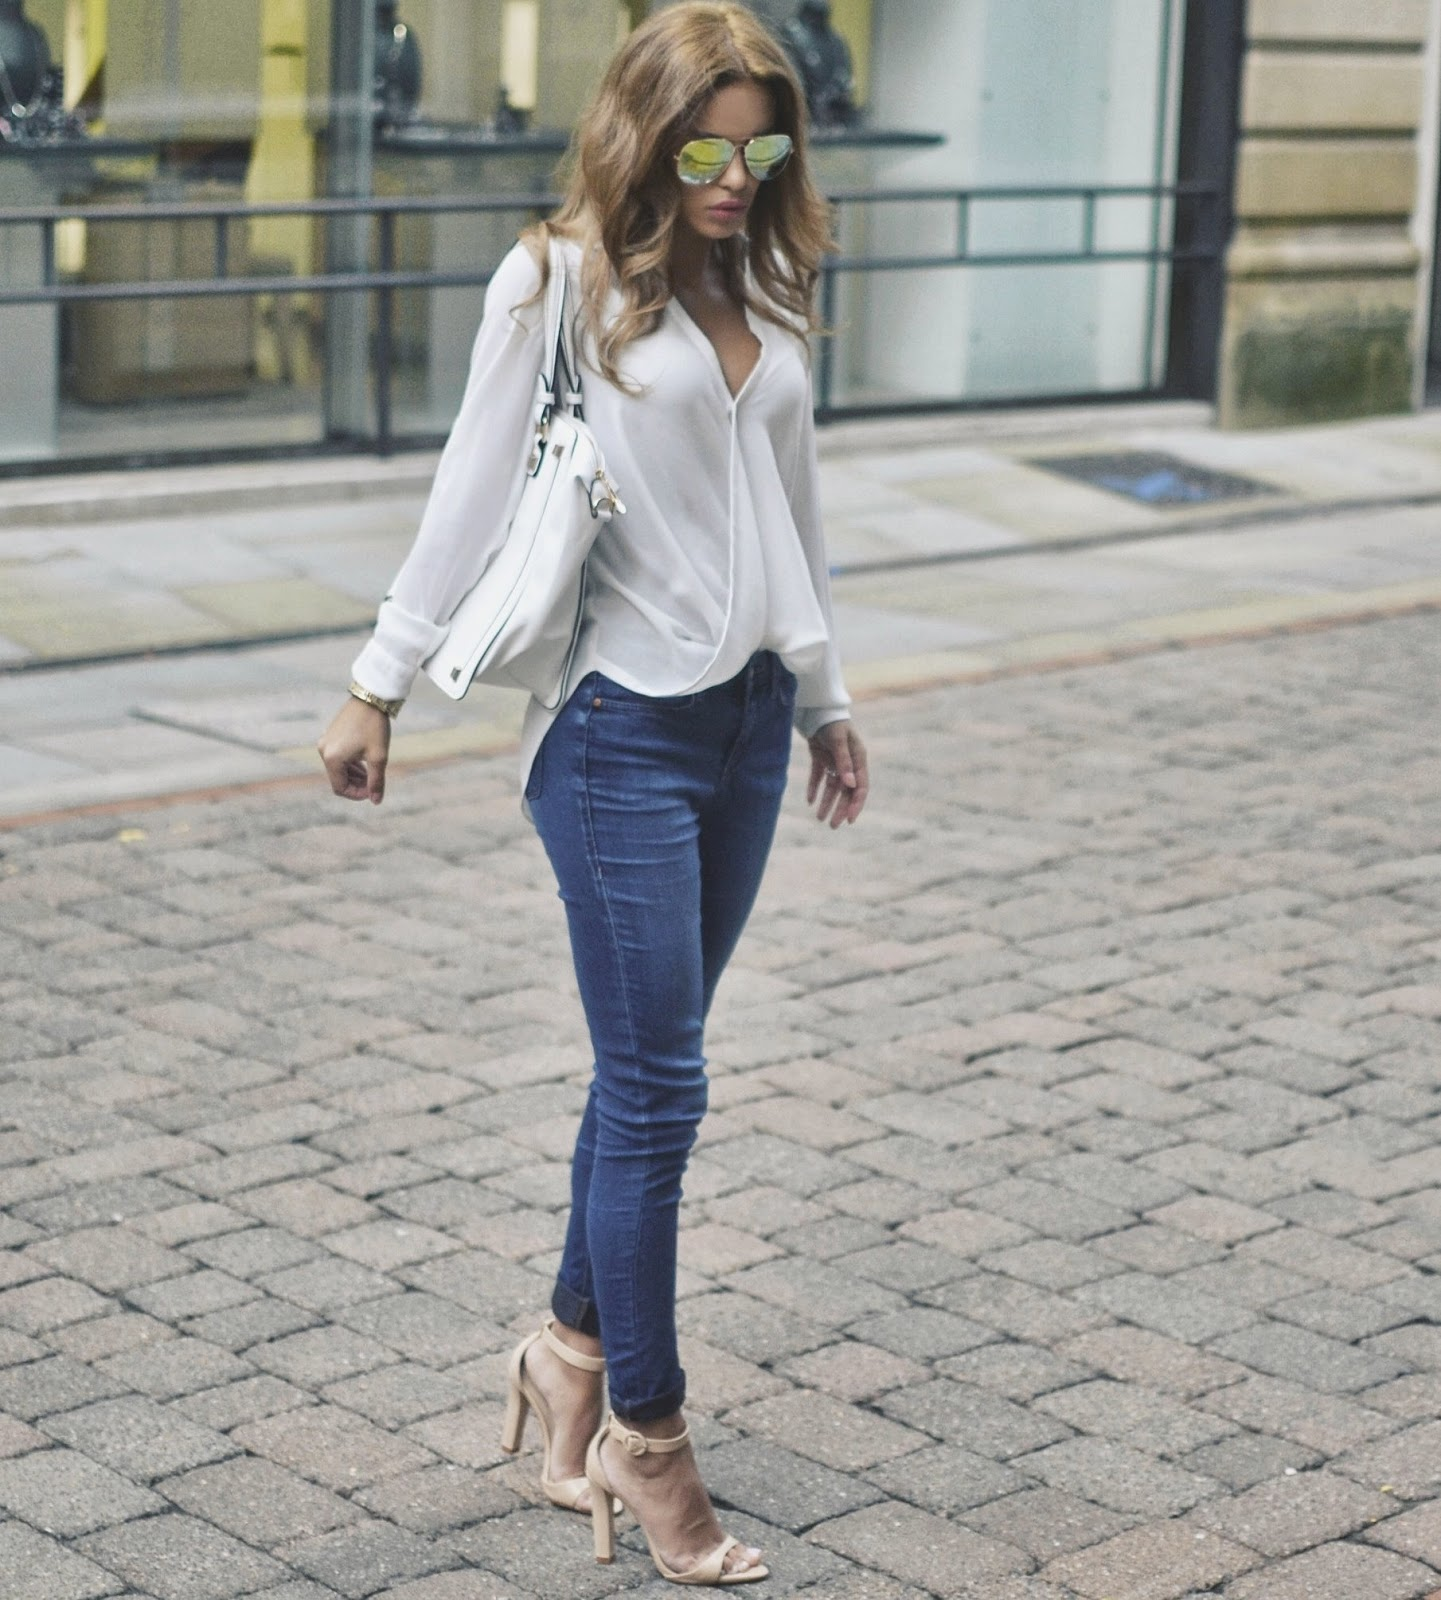 Nada Adelle wears denim skinny jeans and cute white wrap blouse. Top: River Island, Jeans: Topshop, Heels: Zara.